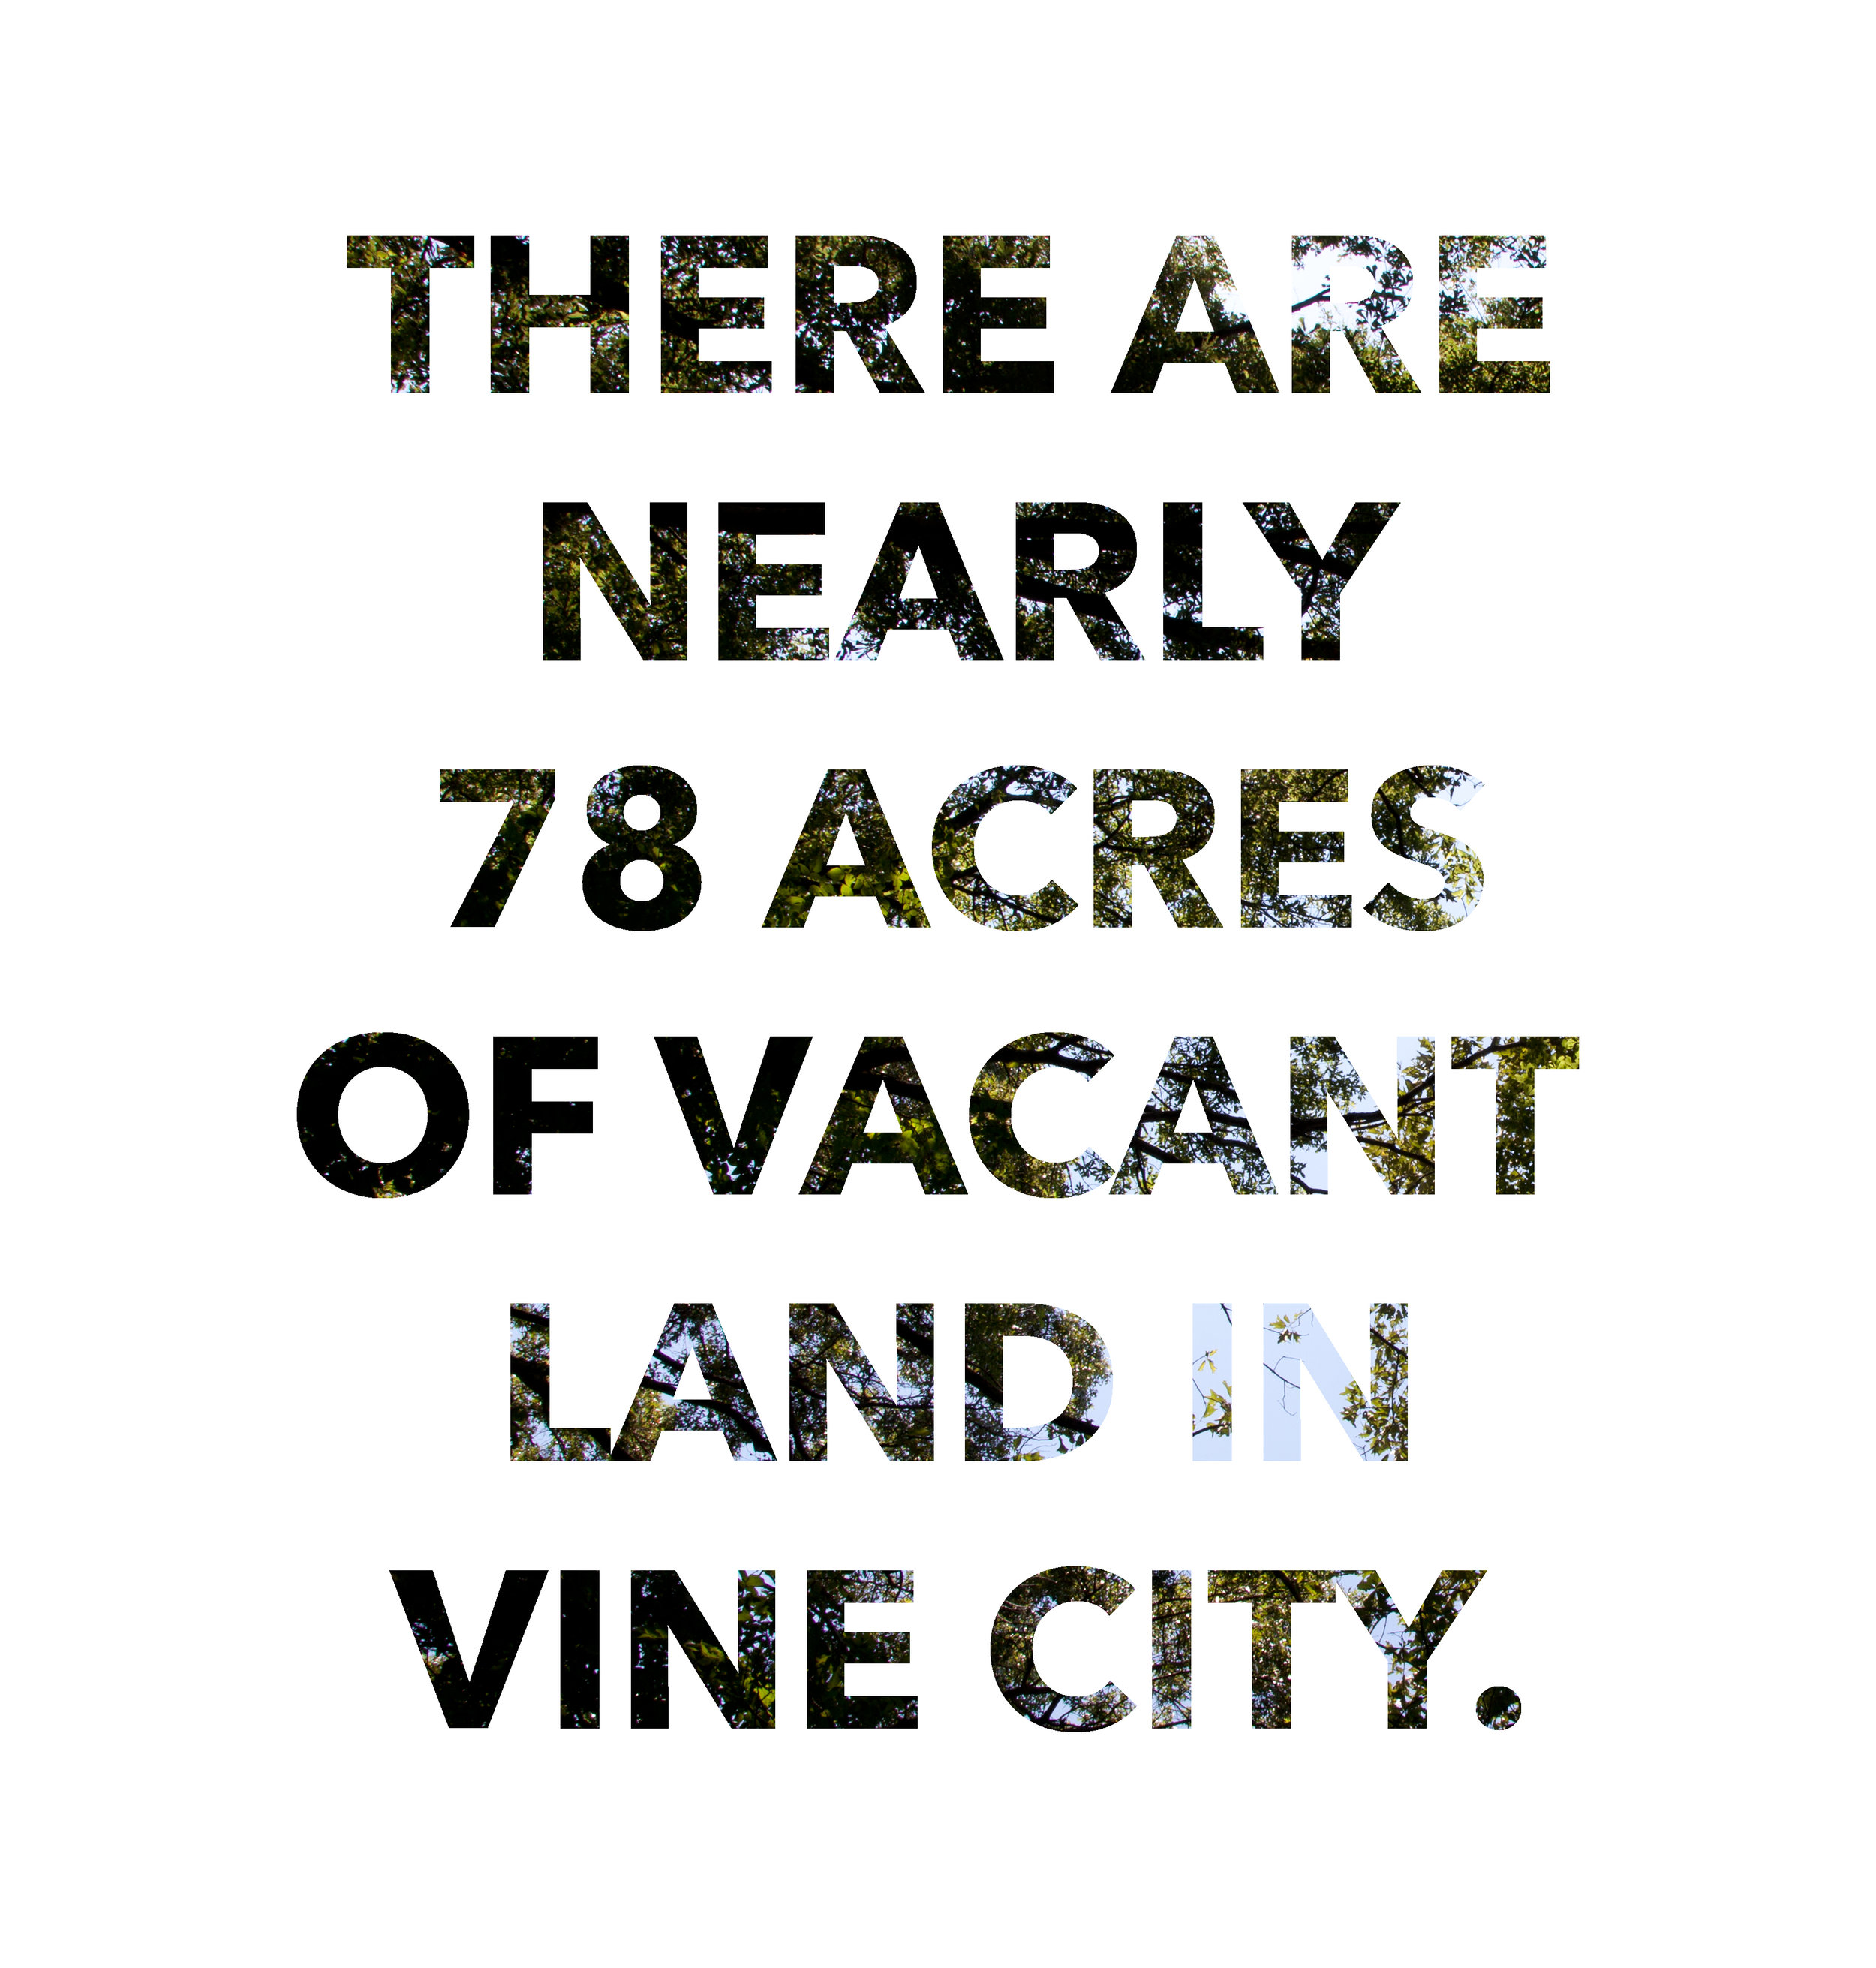 Vine City is a notoriously poor neighborhood on the city's west side.